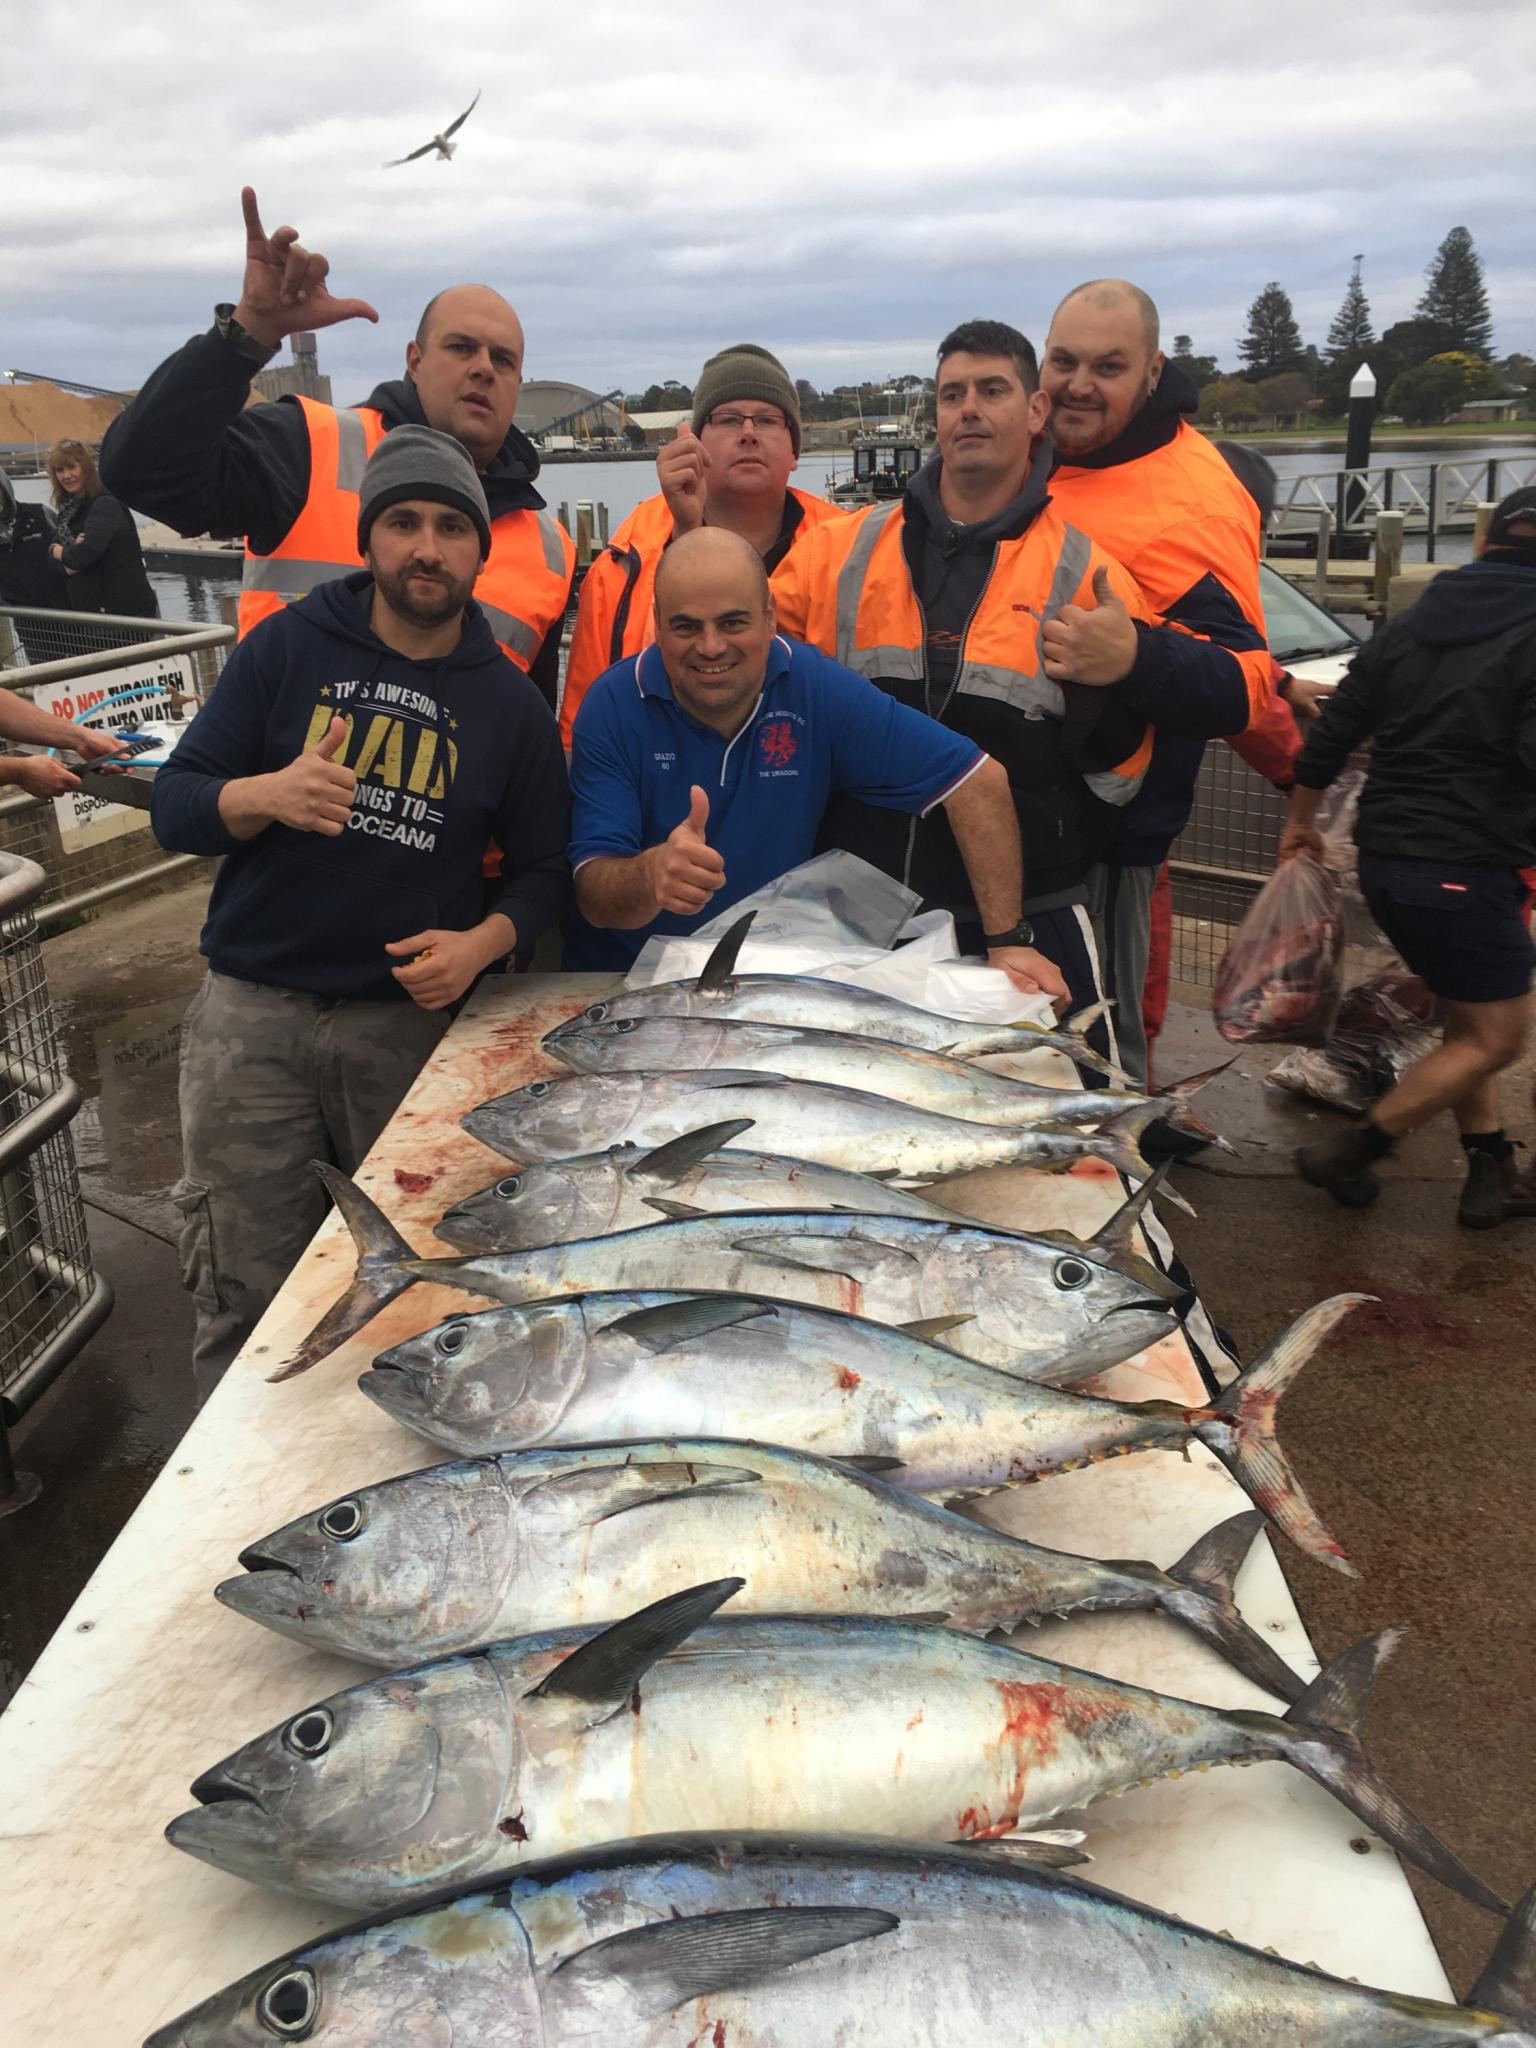 Tuna Fishing Charters Portland June 24th 2018